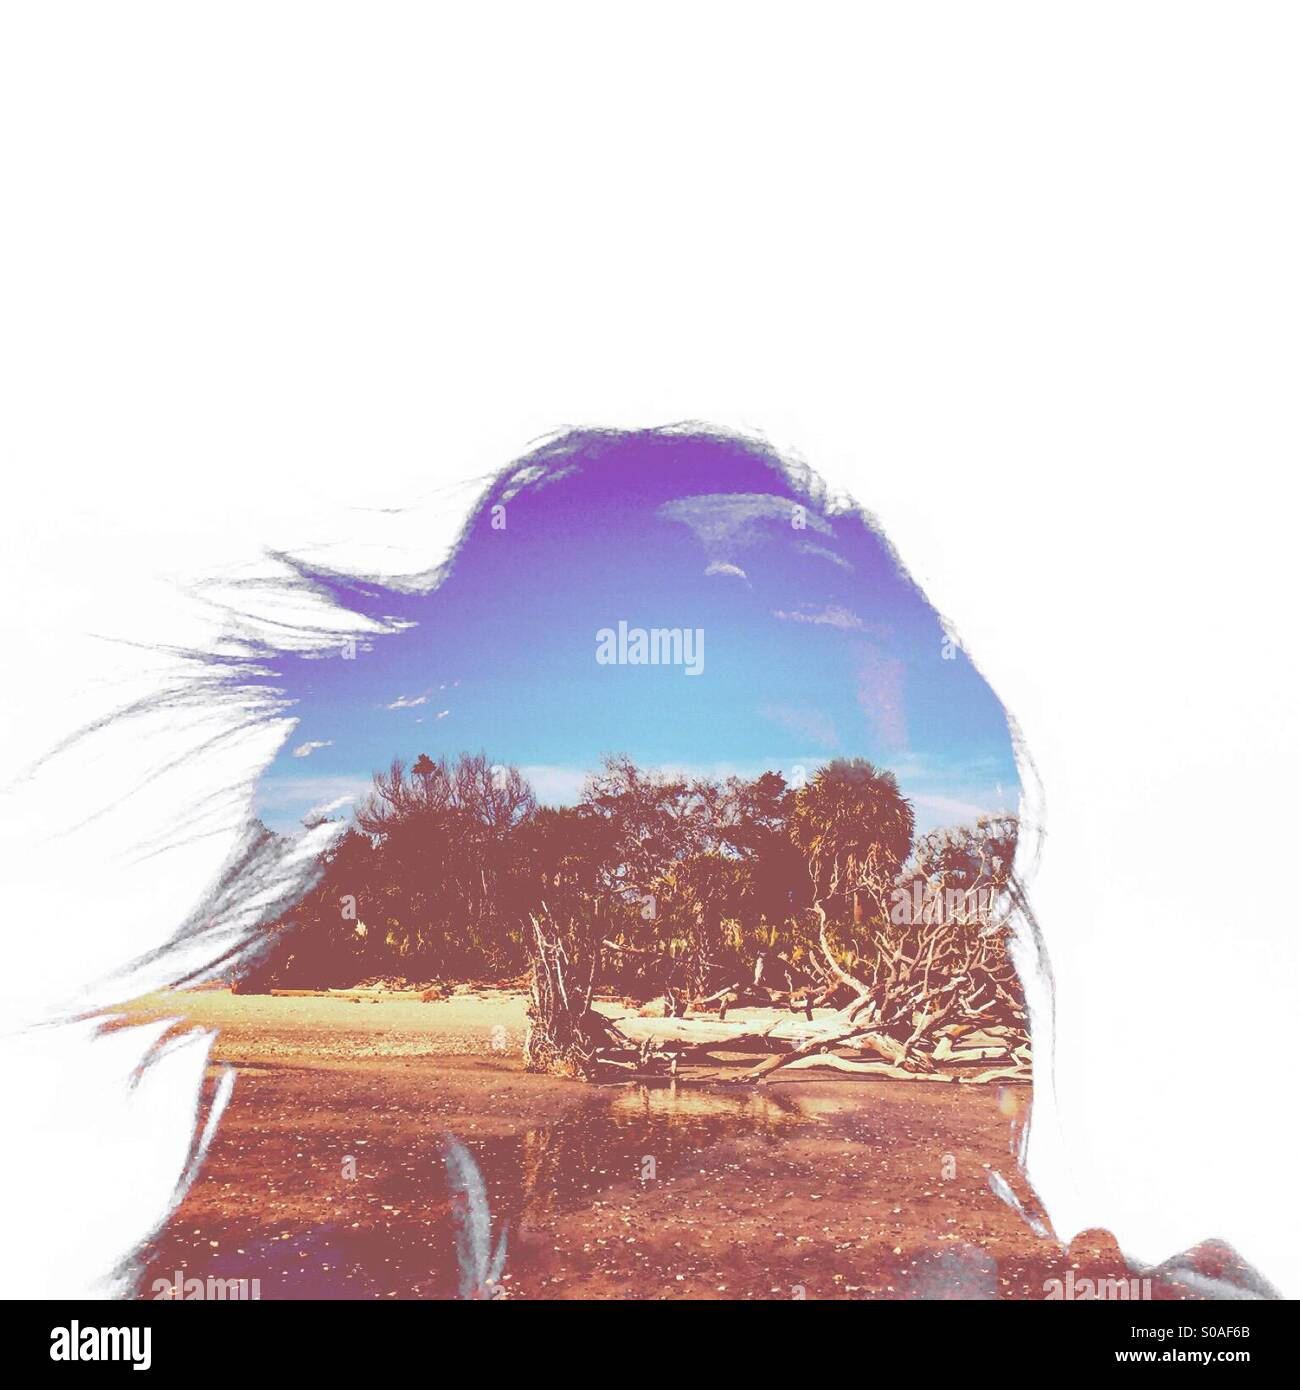 A double-exposure of a woman with long hair and a beach create an artistic silhouette. - Stock Image